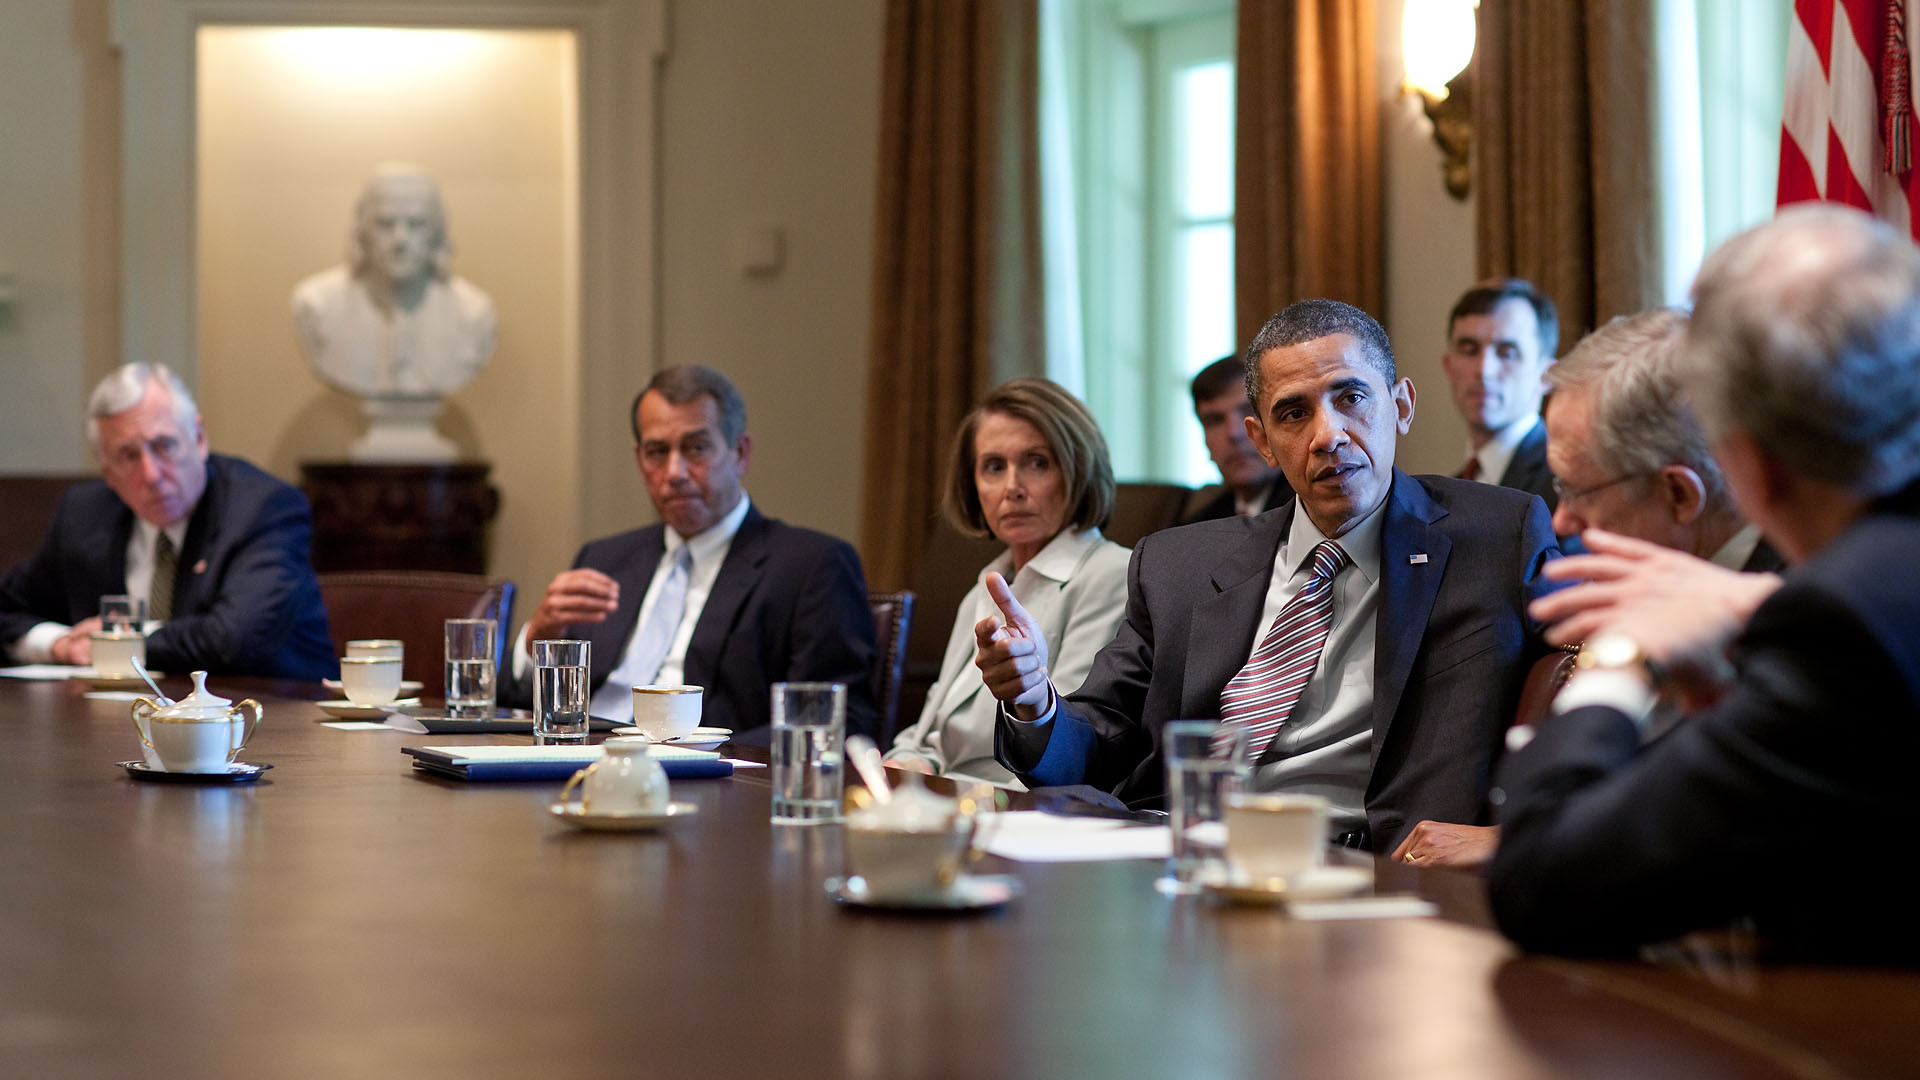 Best ideas about Obama Cabinet Members . Save or Pin President Obama Meets with Congressional Leaders on the BP Now.